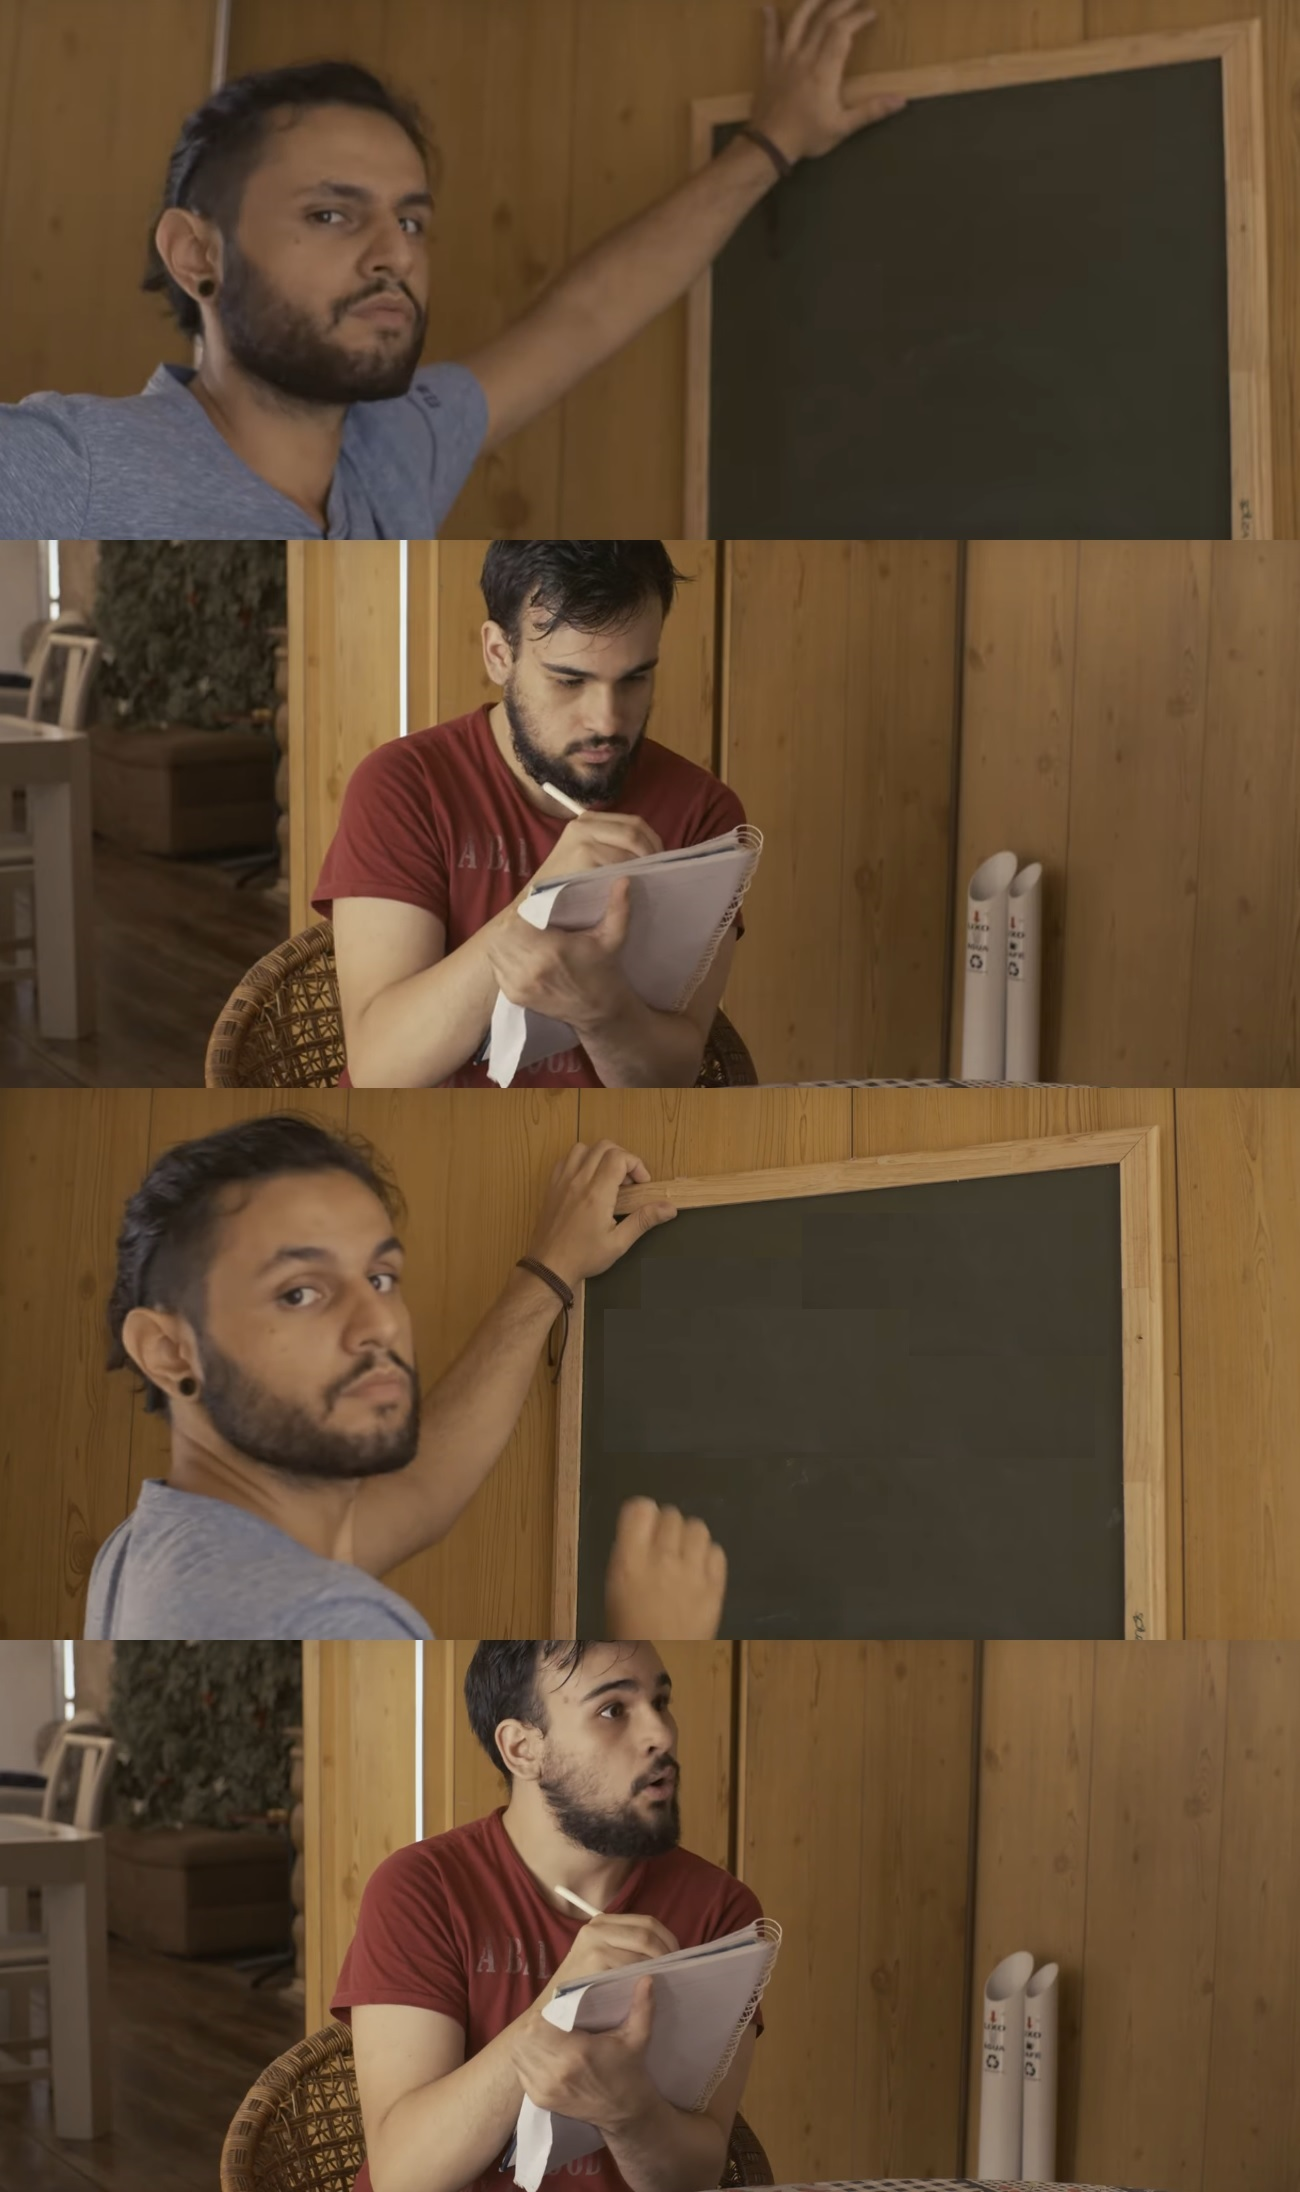 Teaching Blank Meme Template